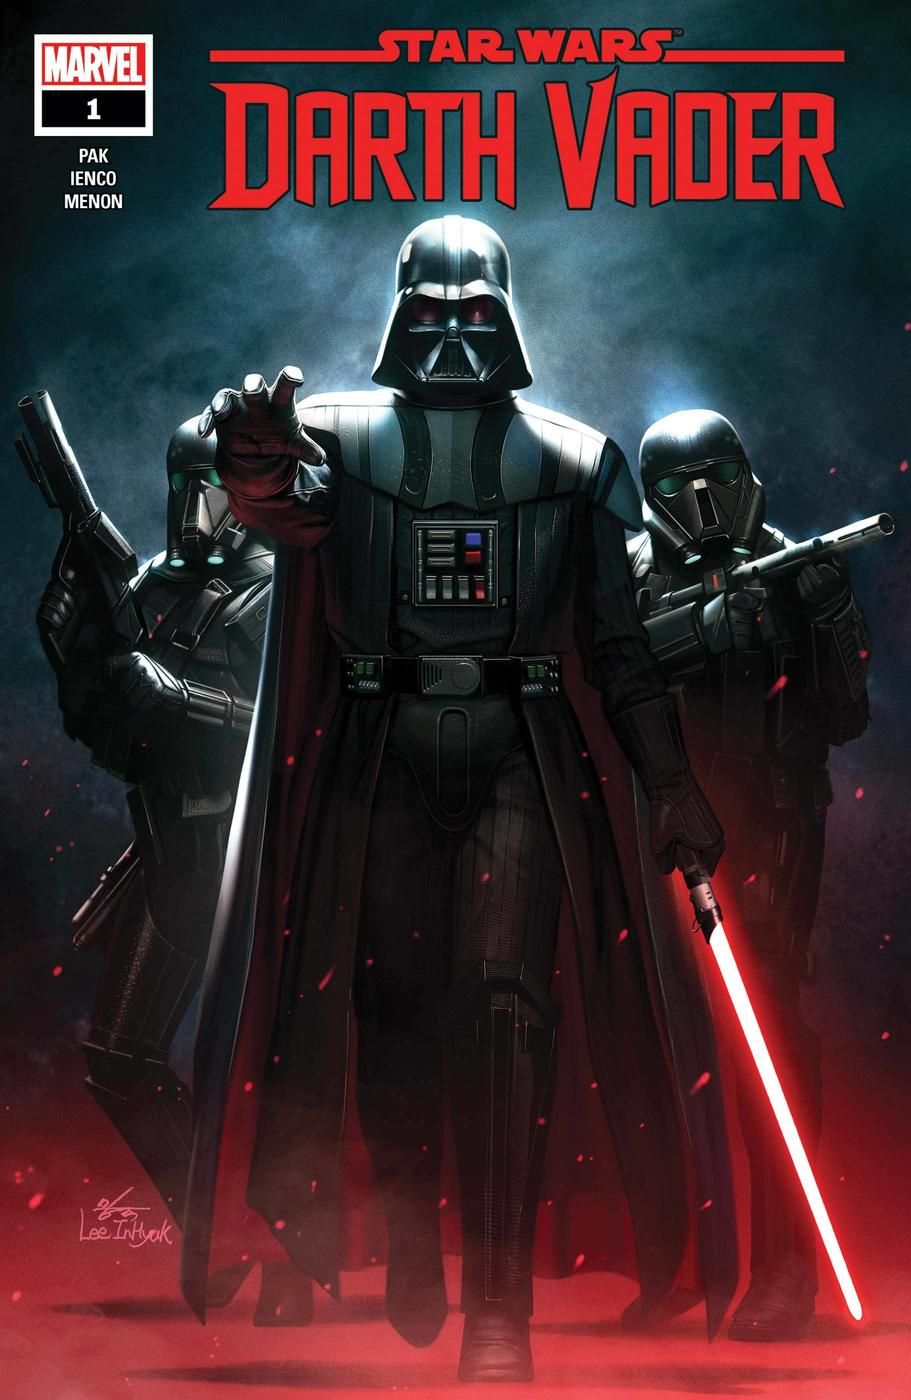 STAR WARS: DARTH VADER #1 cover by In-​Hyuk Lee